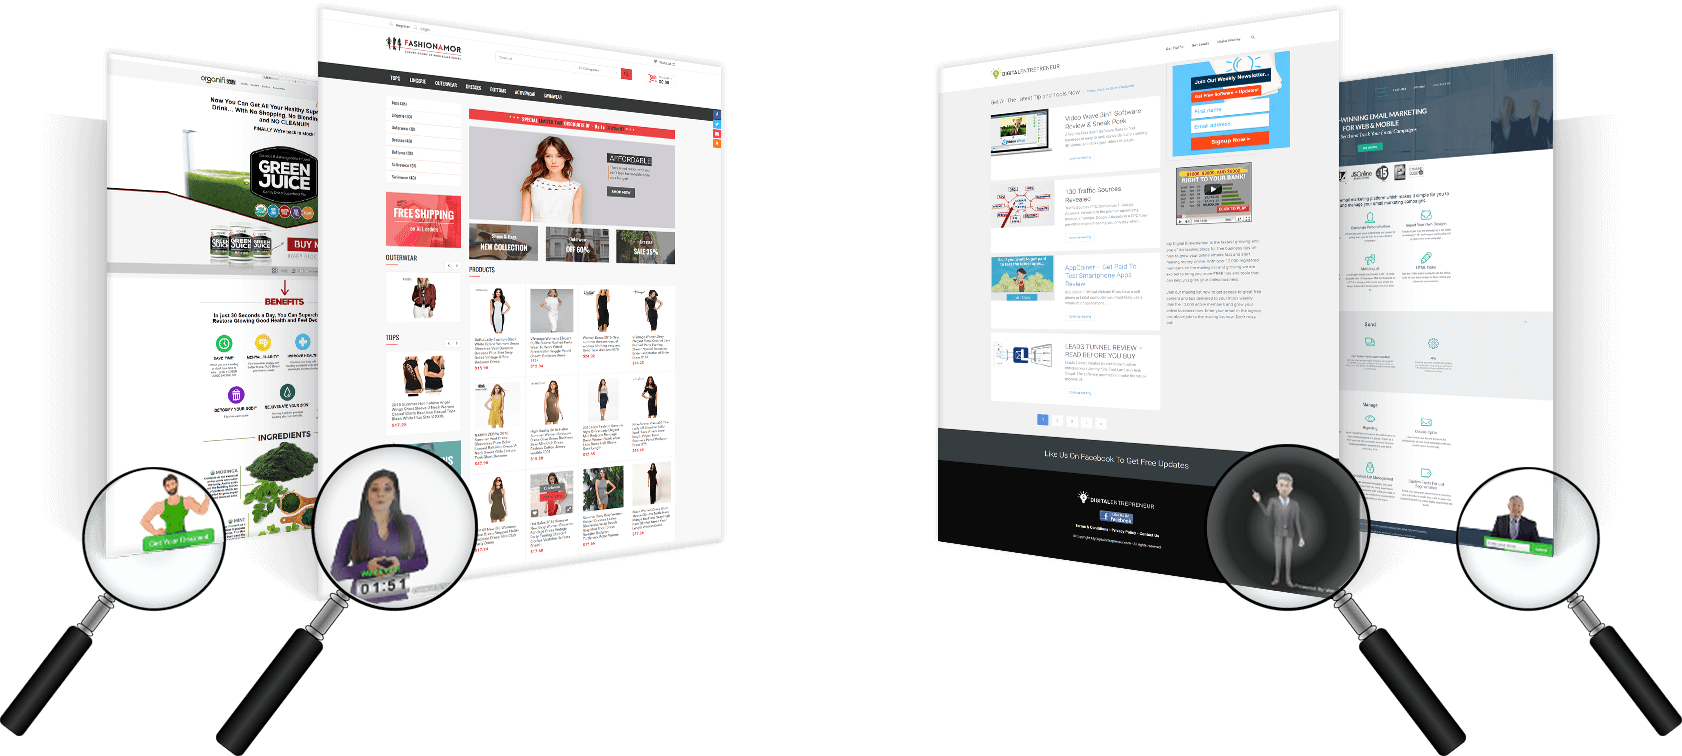 VideoPal Review – New Revolutionary Software Platform To Boost Leads, Sales and Profits Guaranteed Websites, Blogs and Affiliate Pages guaranteed to boost Boost Leads,Sales and Profits,VideoPal